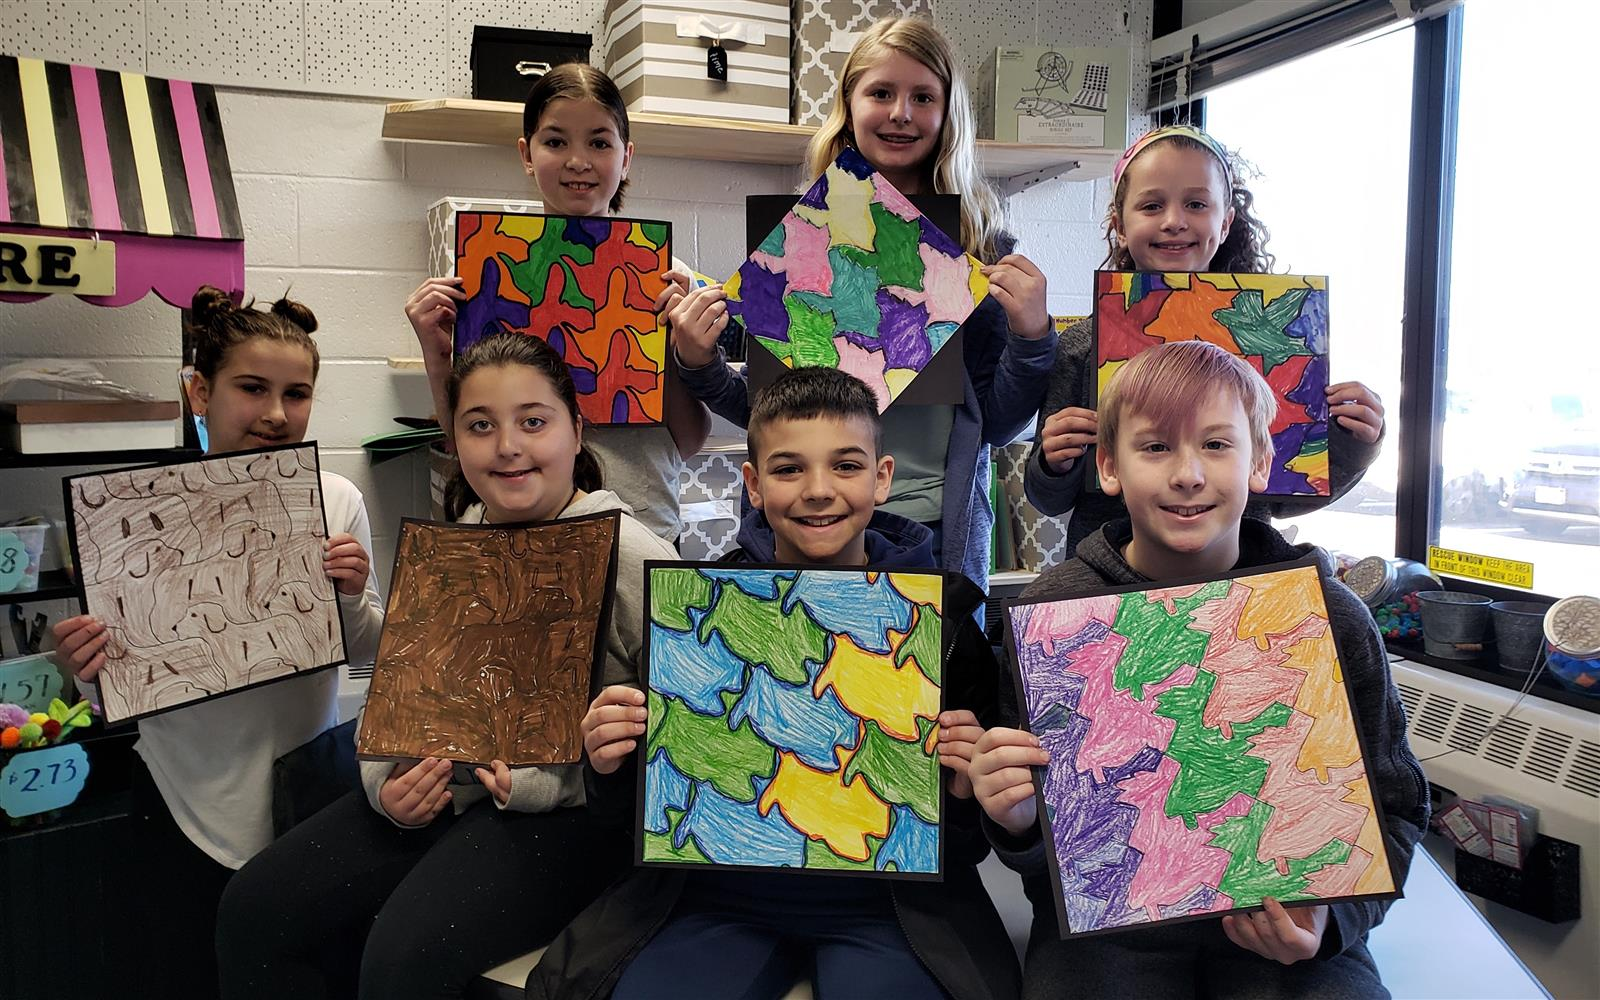 Oquenock Number Crunchers Design Terrific Tessellations